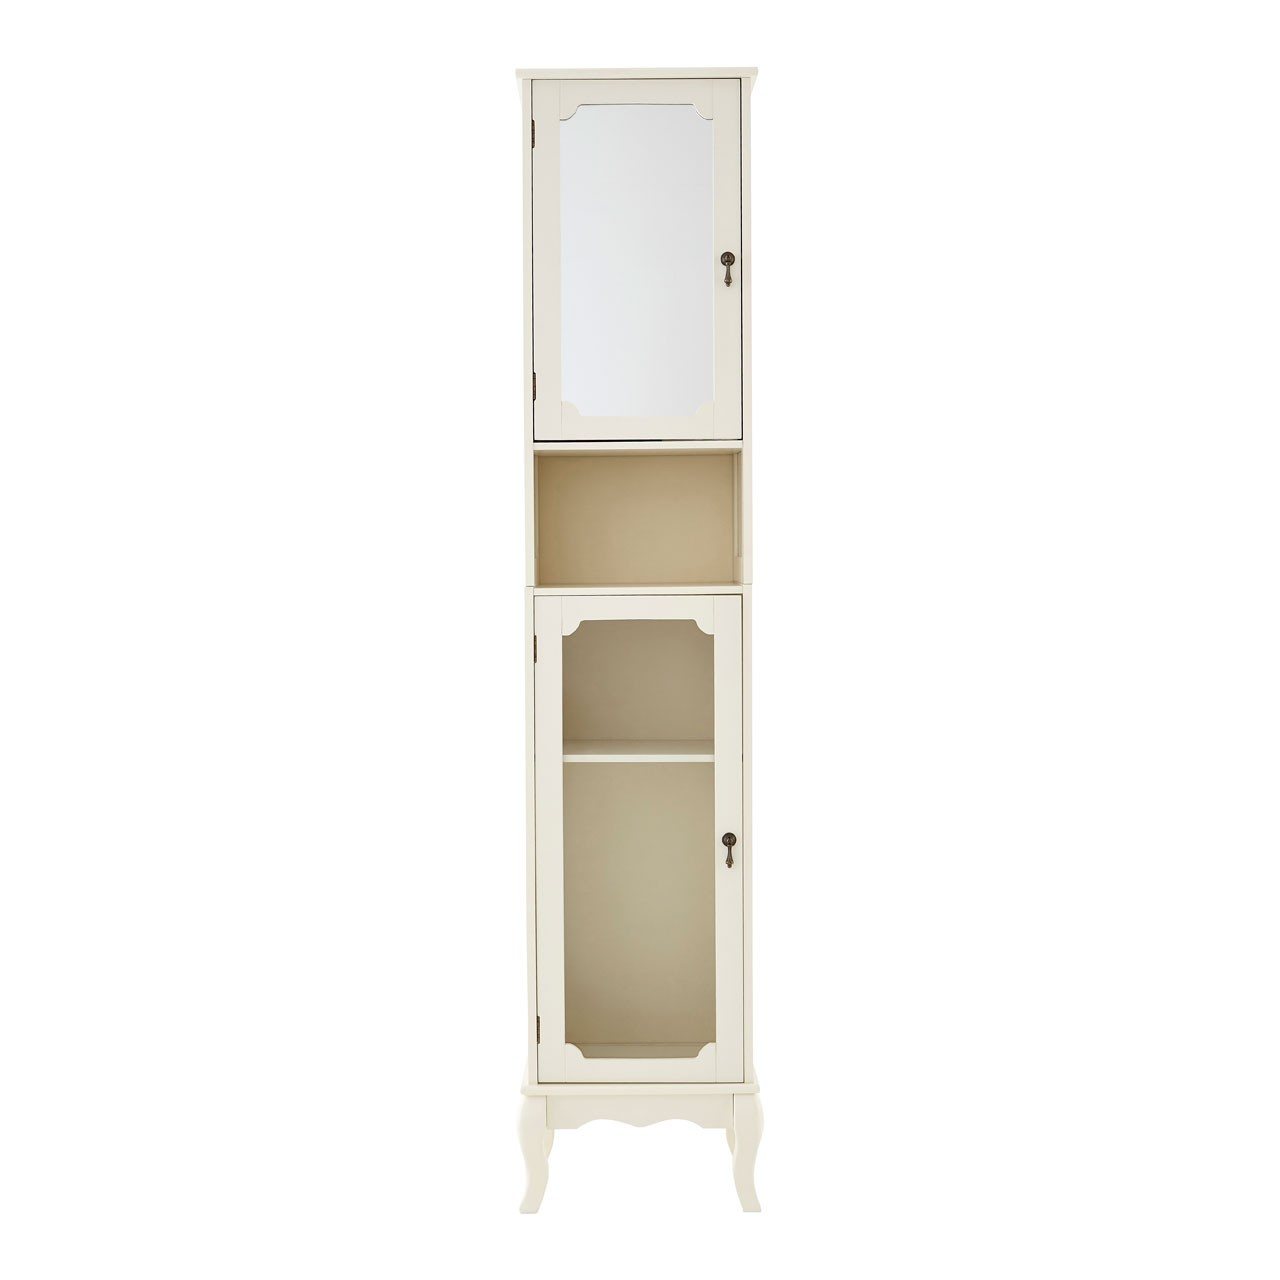 Marcella Tall Cabinet Ivory MDF Ideal For Home Office